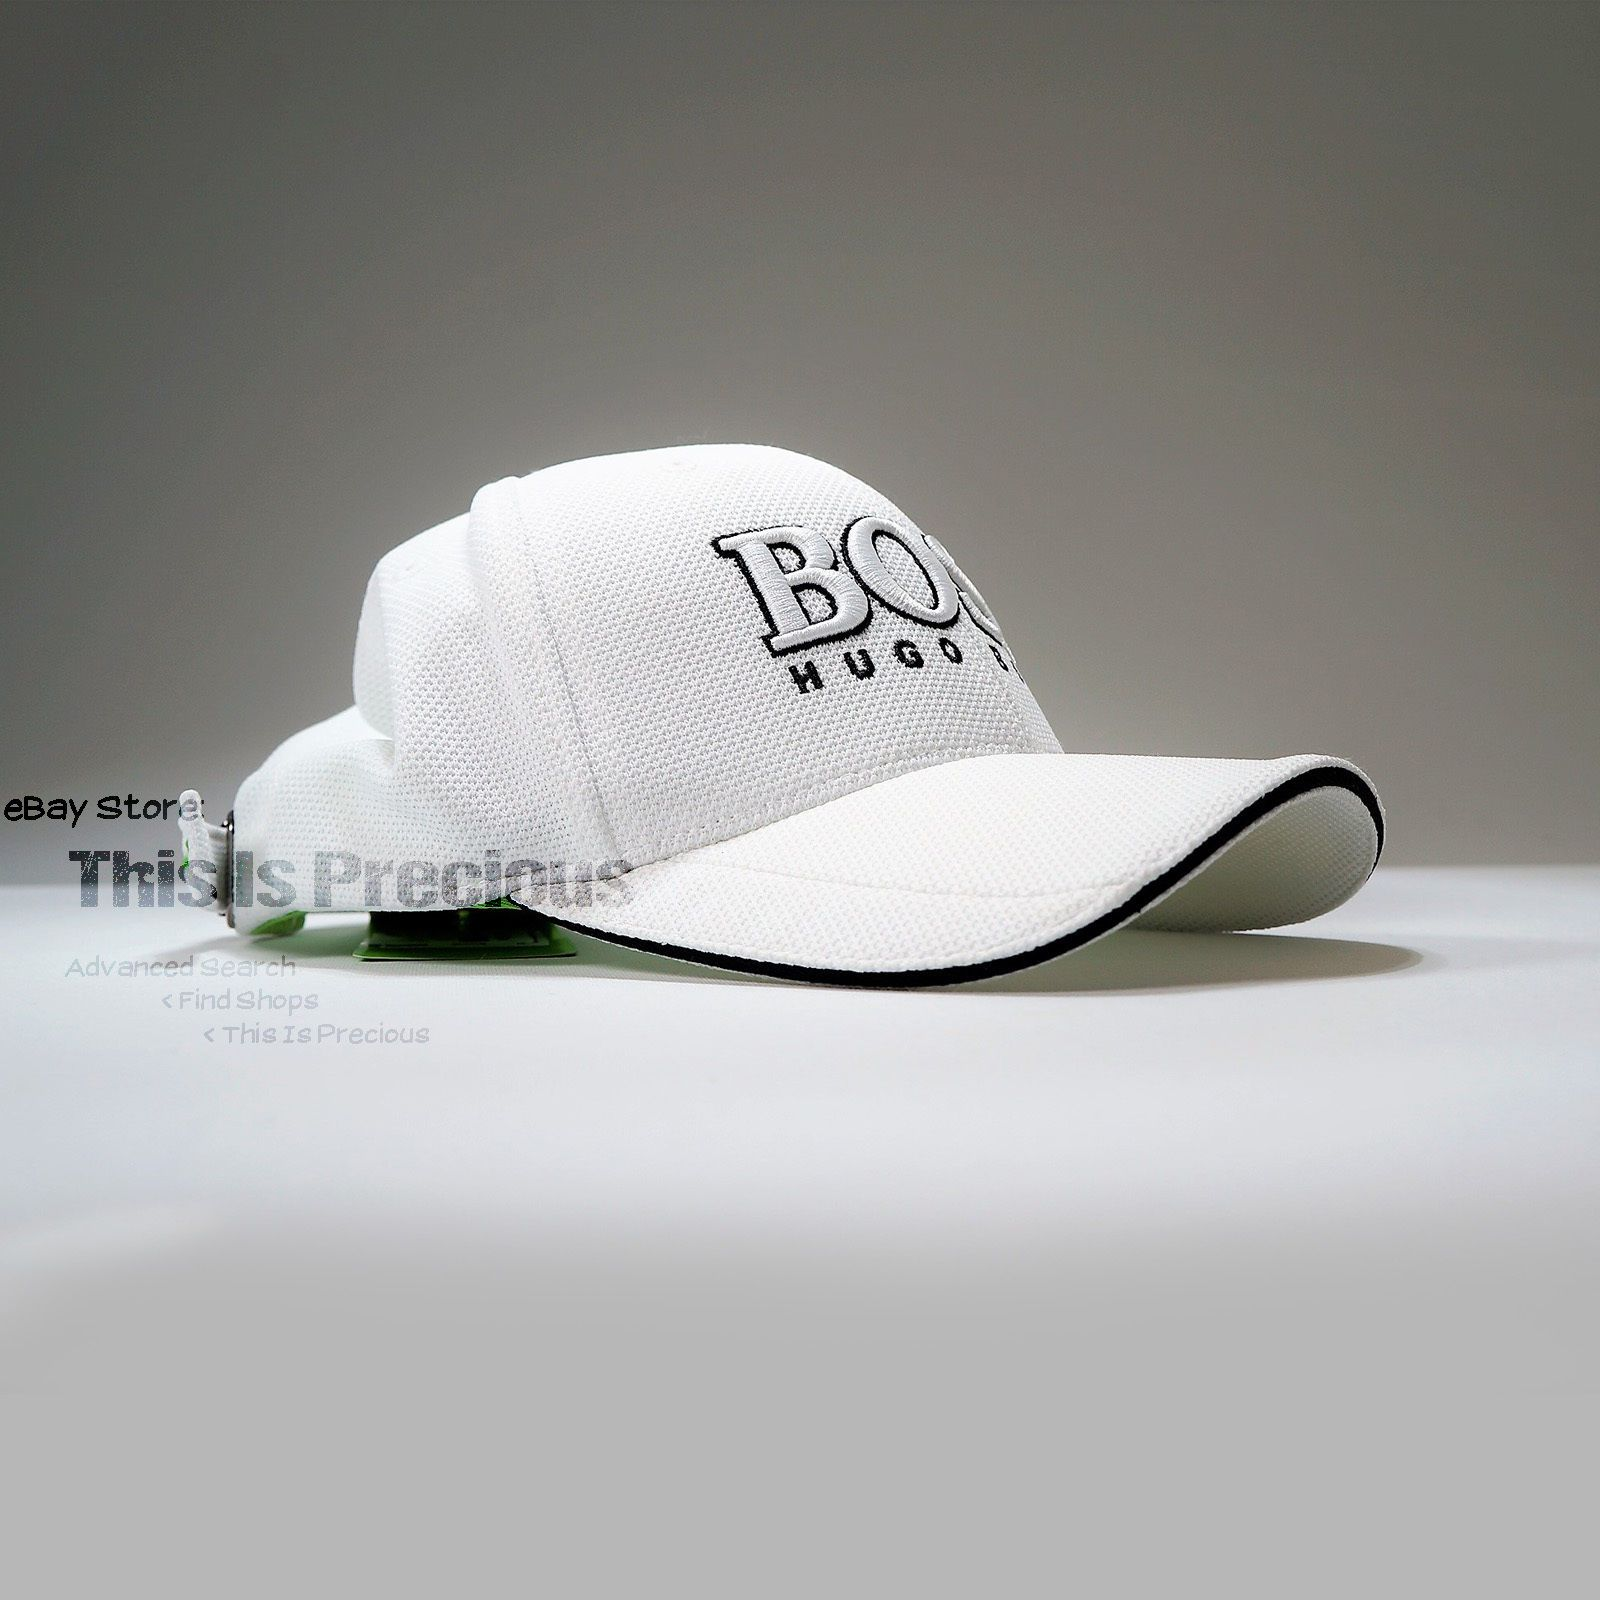 New Hugo Boss Golf Hat Curved Bill No Flat Visor Baseball Cap Strap  Adjustable  fa4b6232afc1